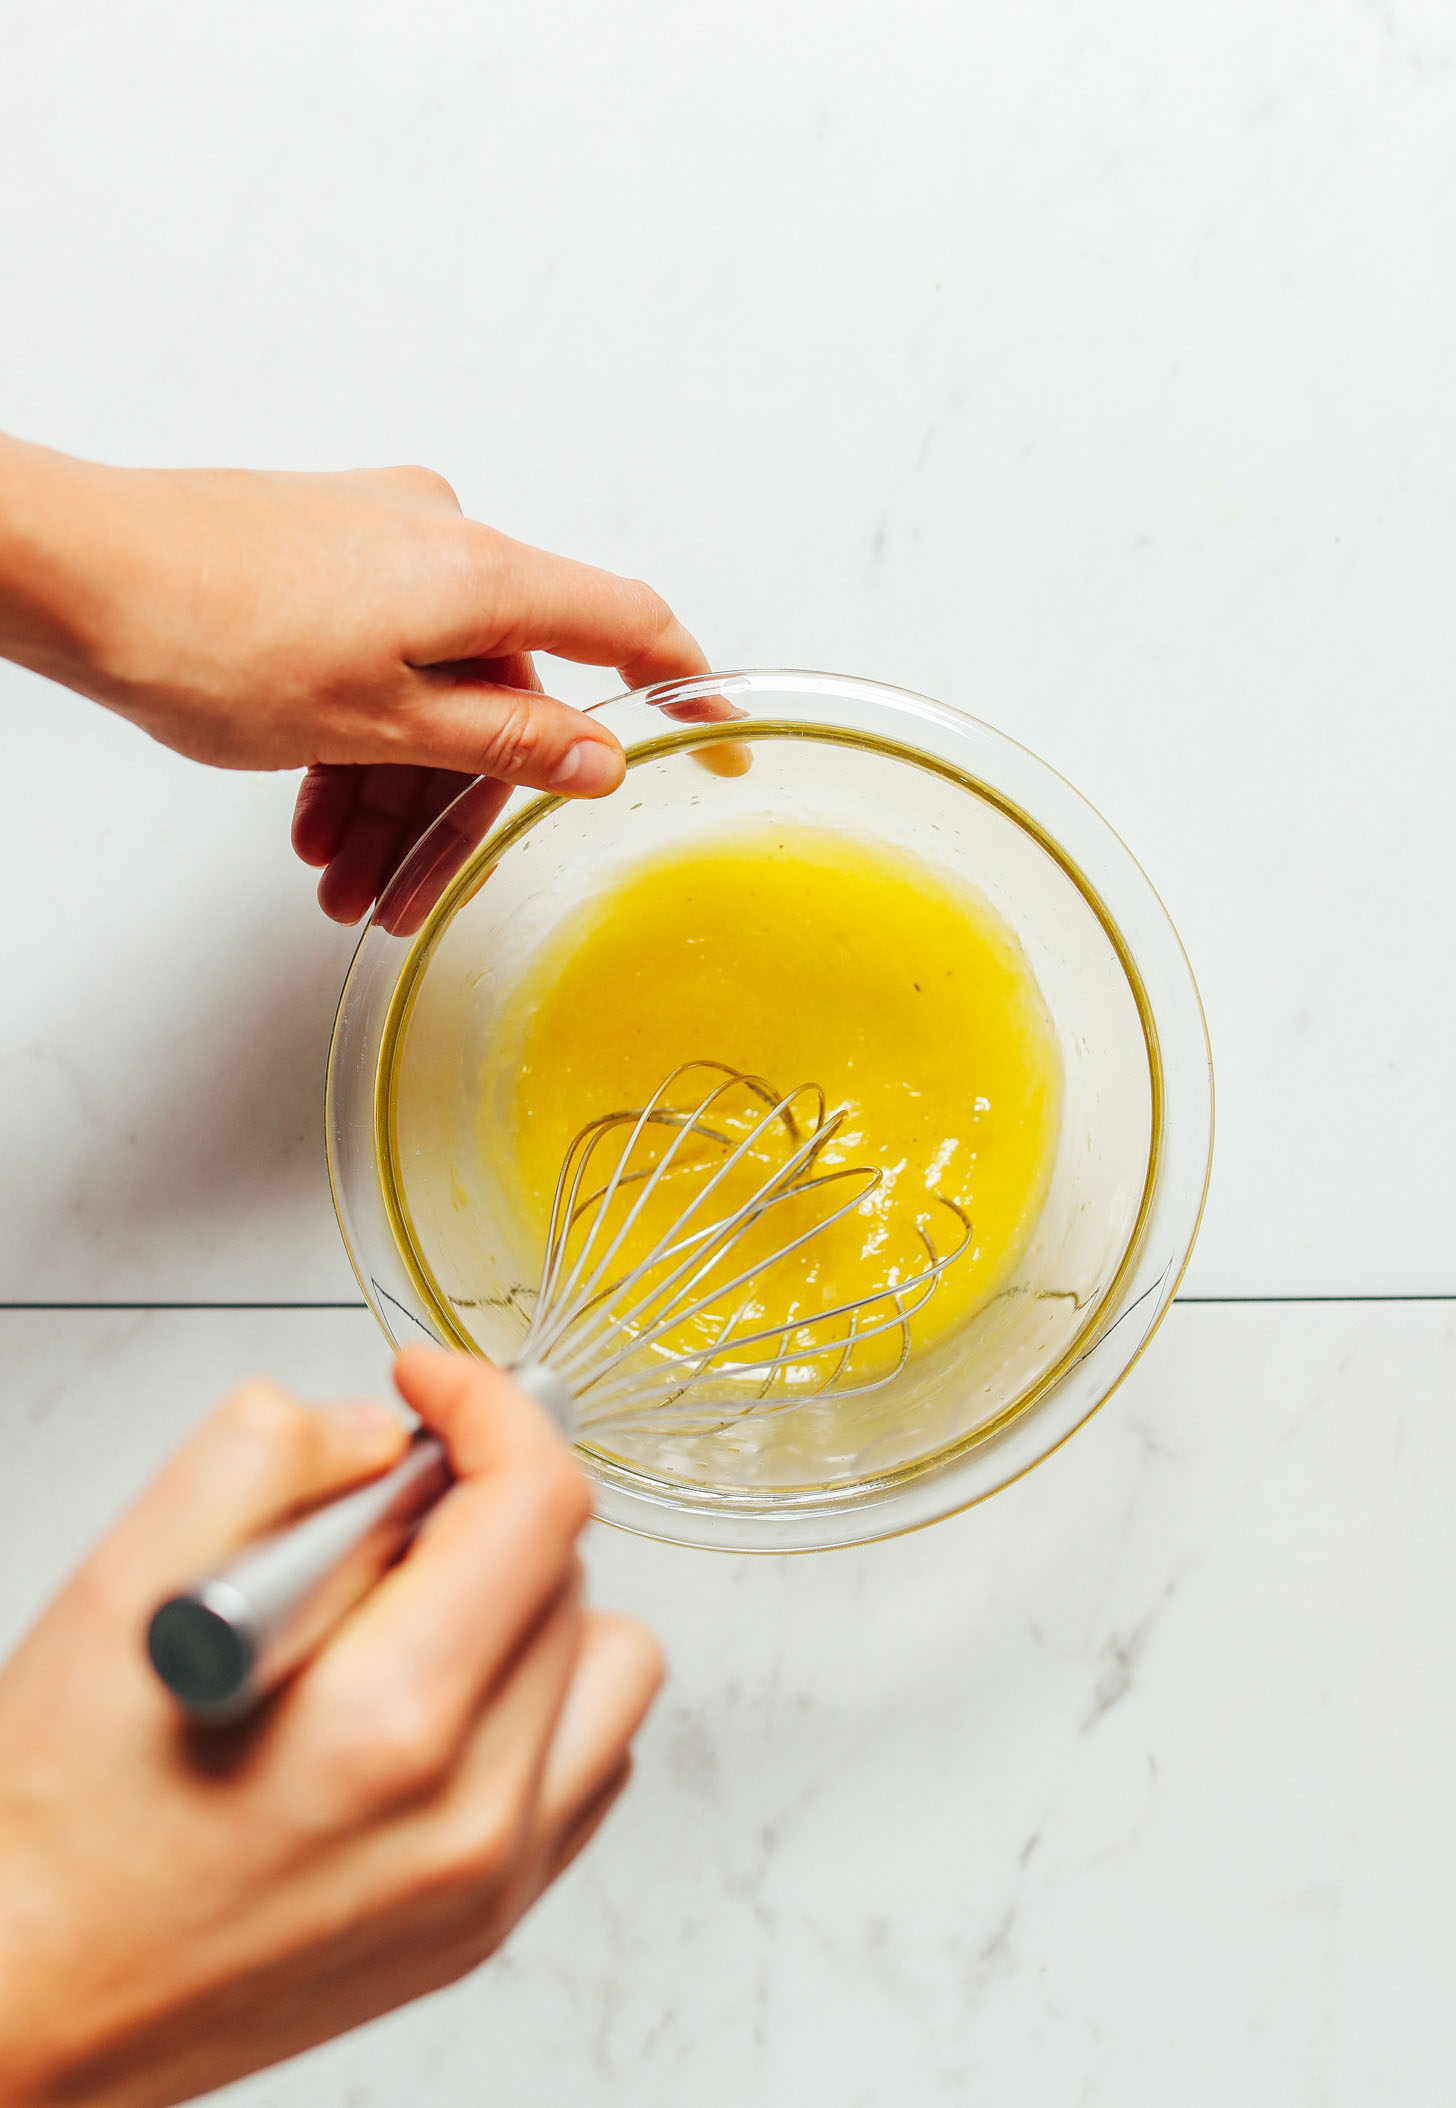 Overhead image of lemon vinaigrette in a glass bowl being whisked by hand